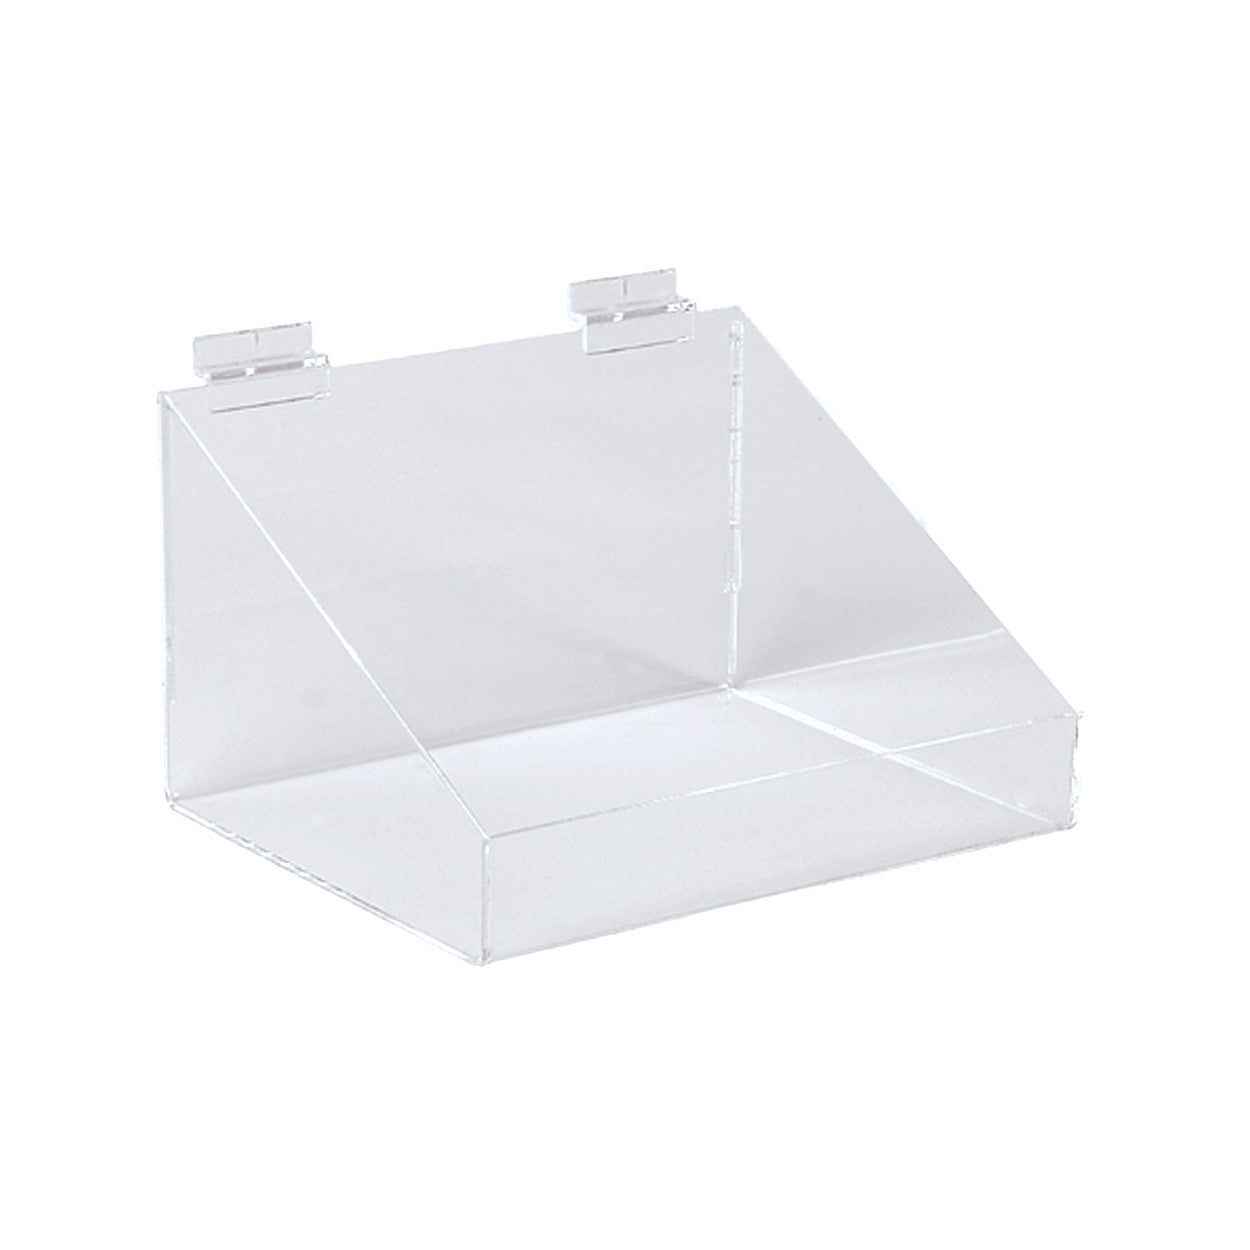 Slatwall acrylic display bin with low front  293 W x 200 D x 150 mm H